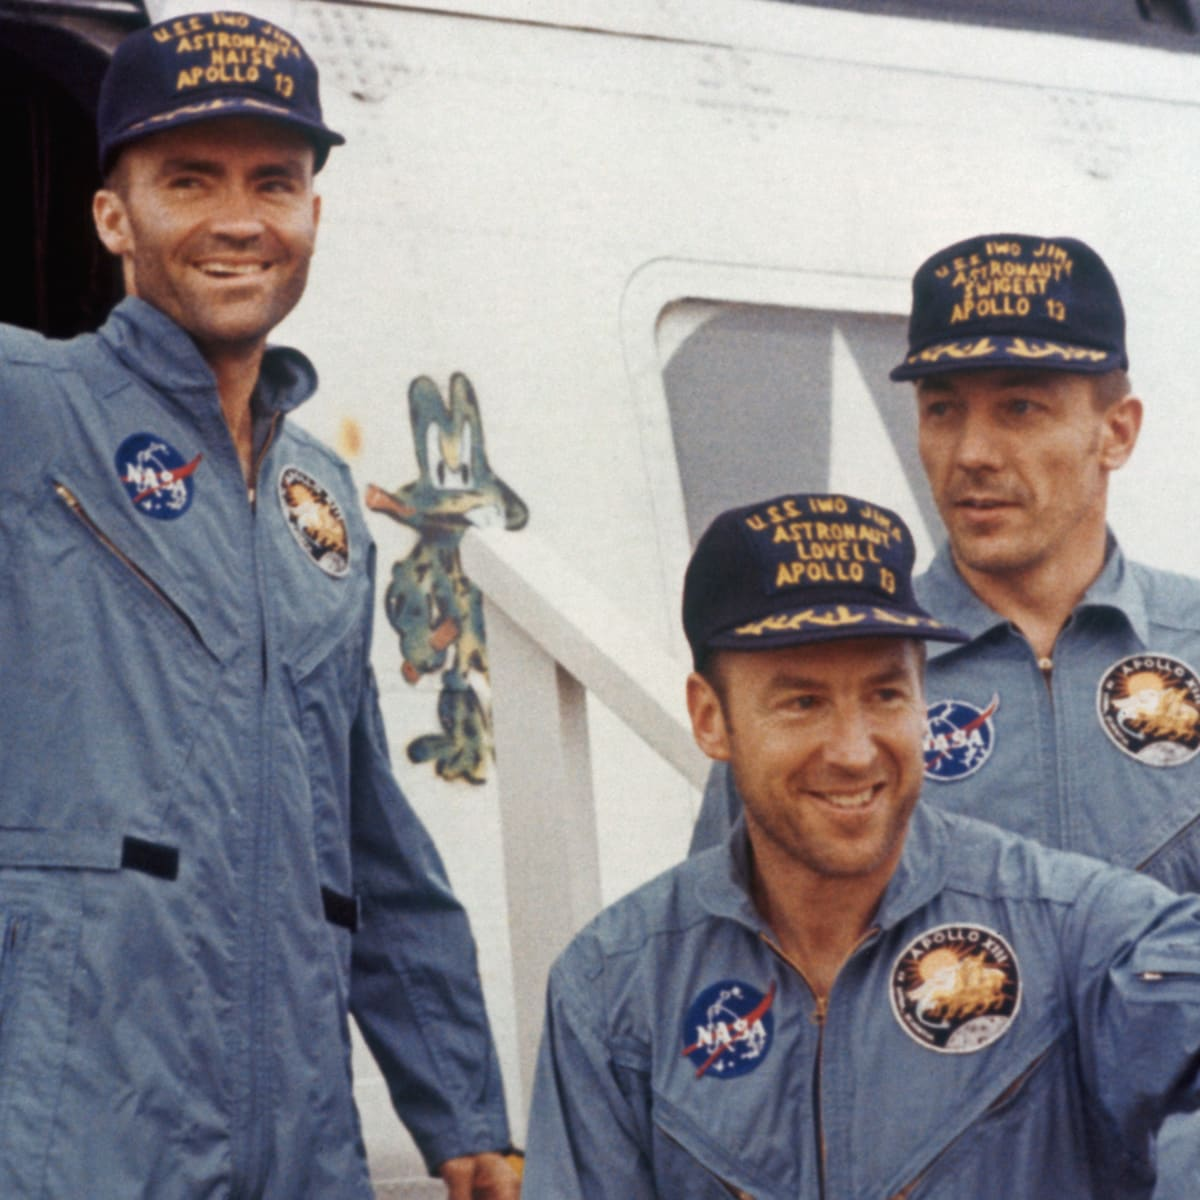 Apollo 13 The Real Life Astronauts Portrayed In The Movie